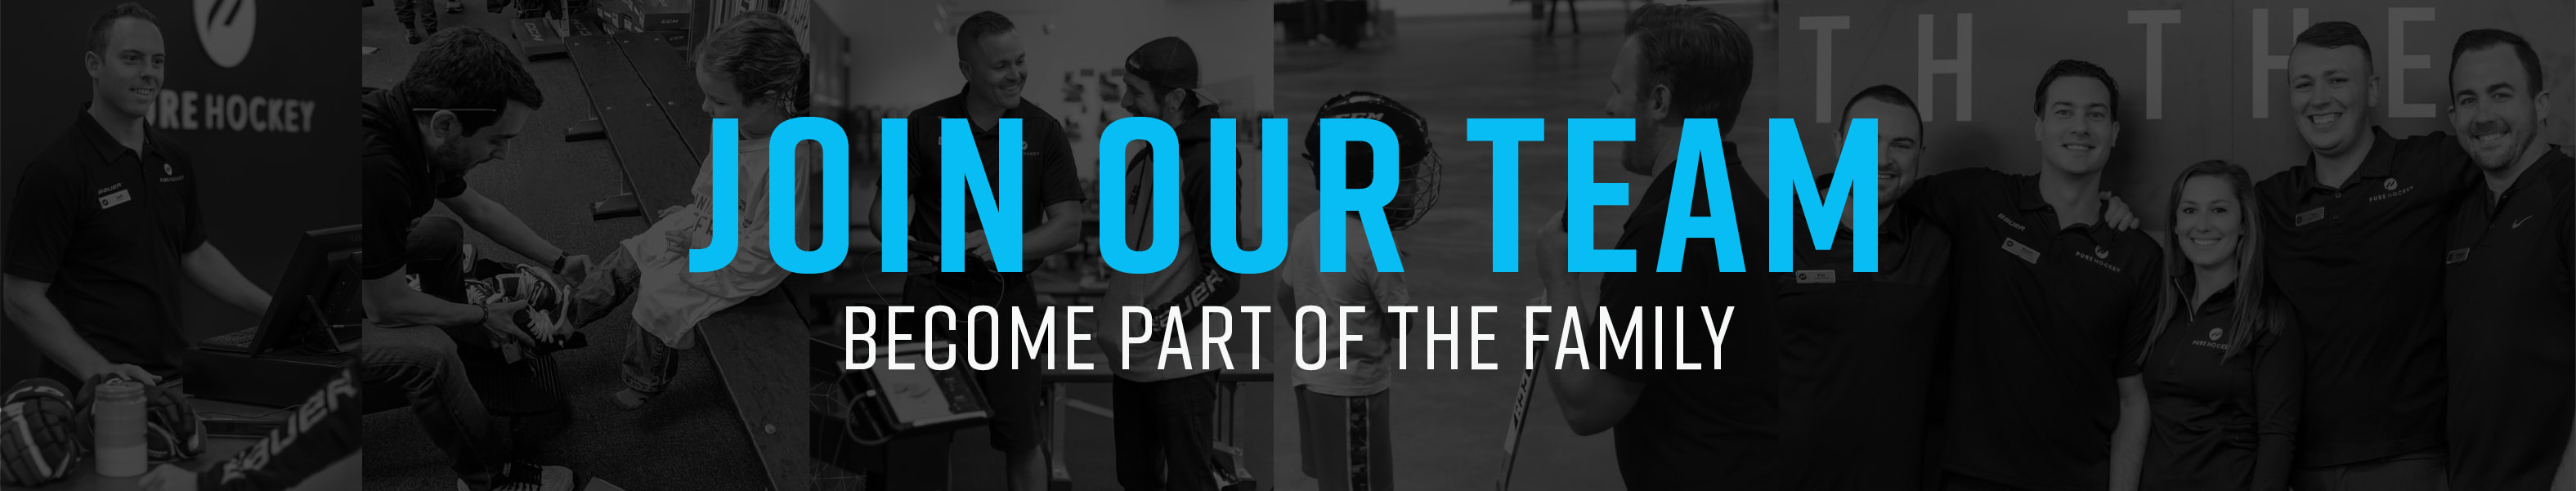 Join Our Team - Become Part of the Family